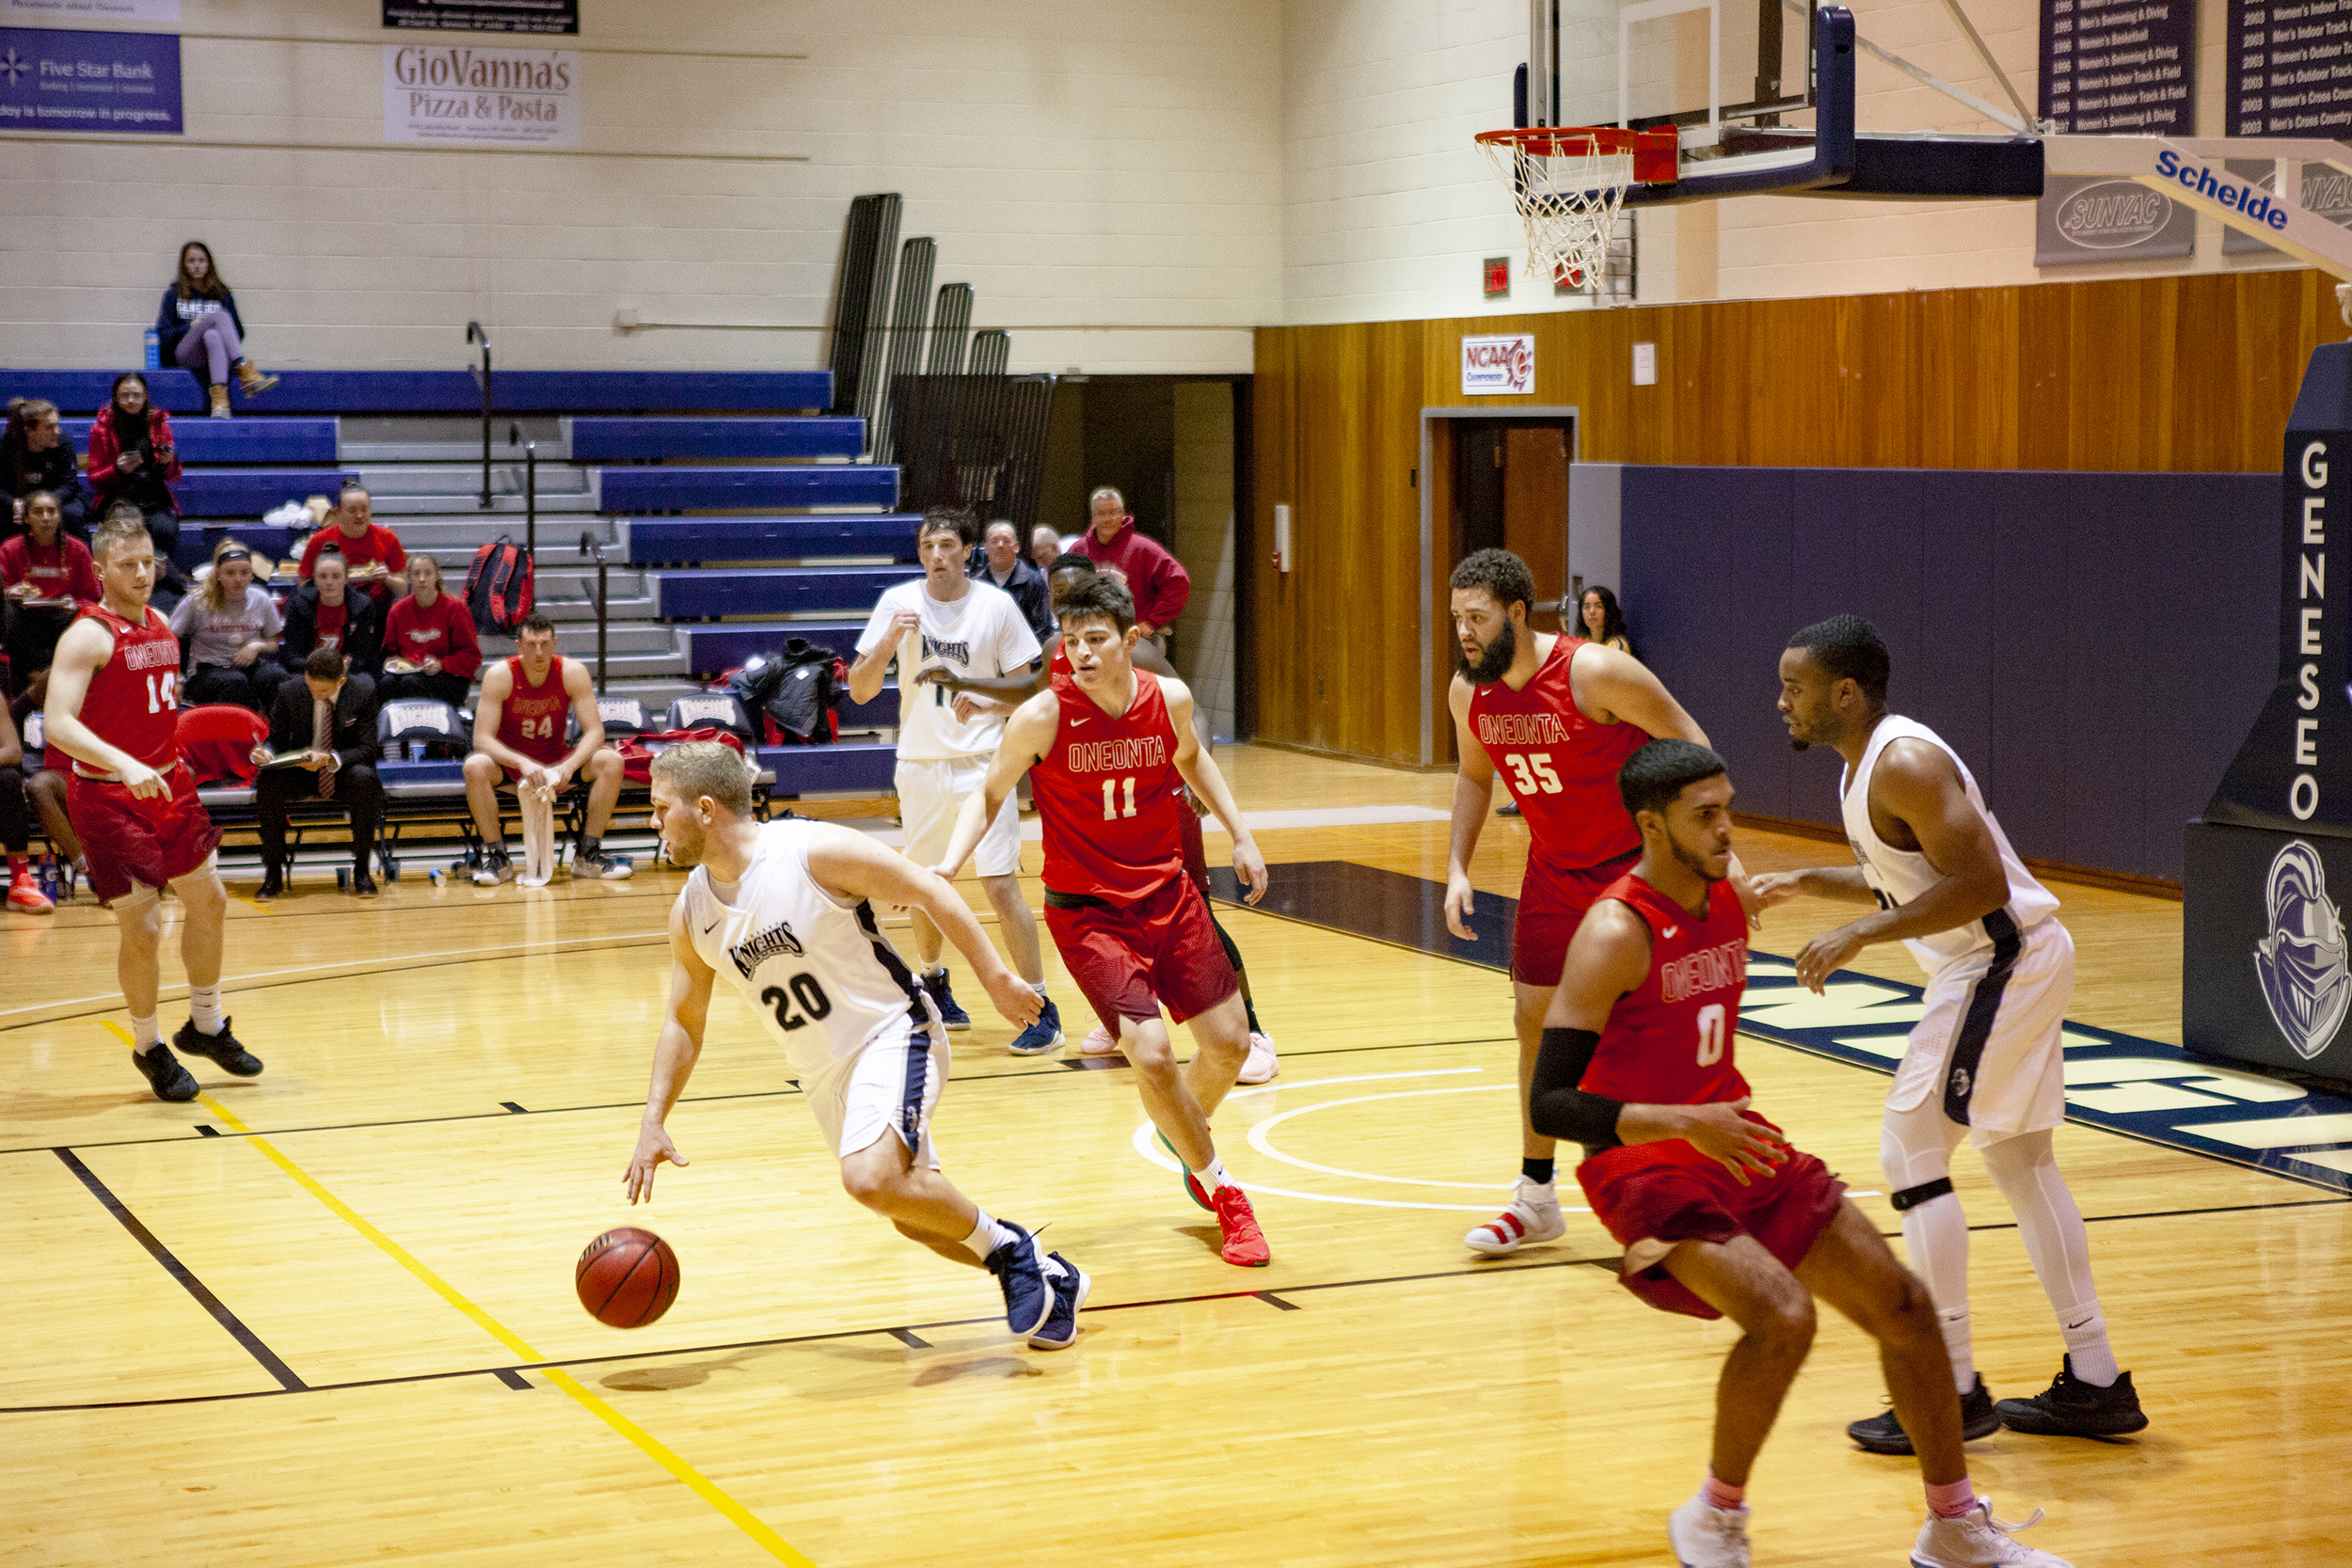 Senior guard Zack Panebianco pushes the ball up the court in the team's game against SUNY Oneonta. Panebianco scored 23 points off the bench in the team's 89-77 loss to the Red Dragons on Friday Feb. 1 (Udeshi Seneviratne/Photo Editor).